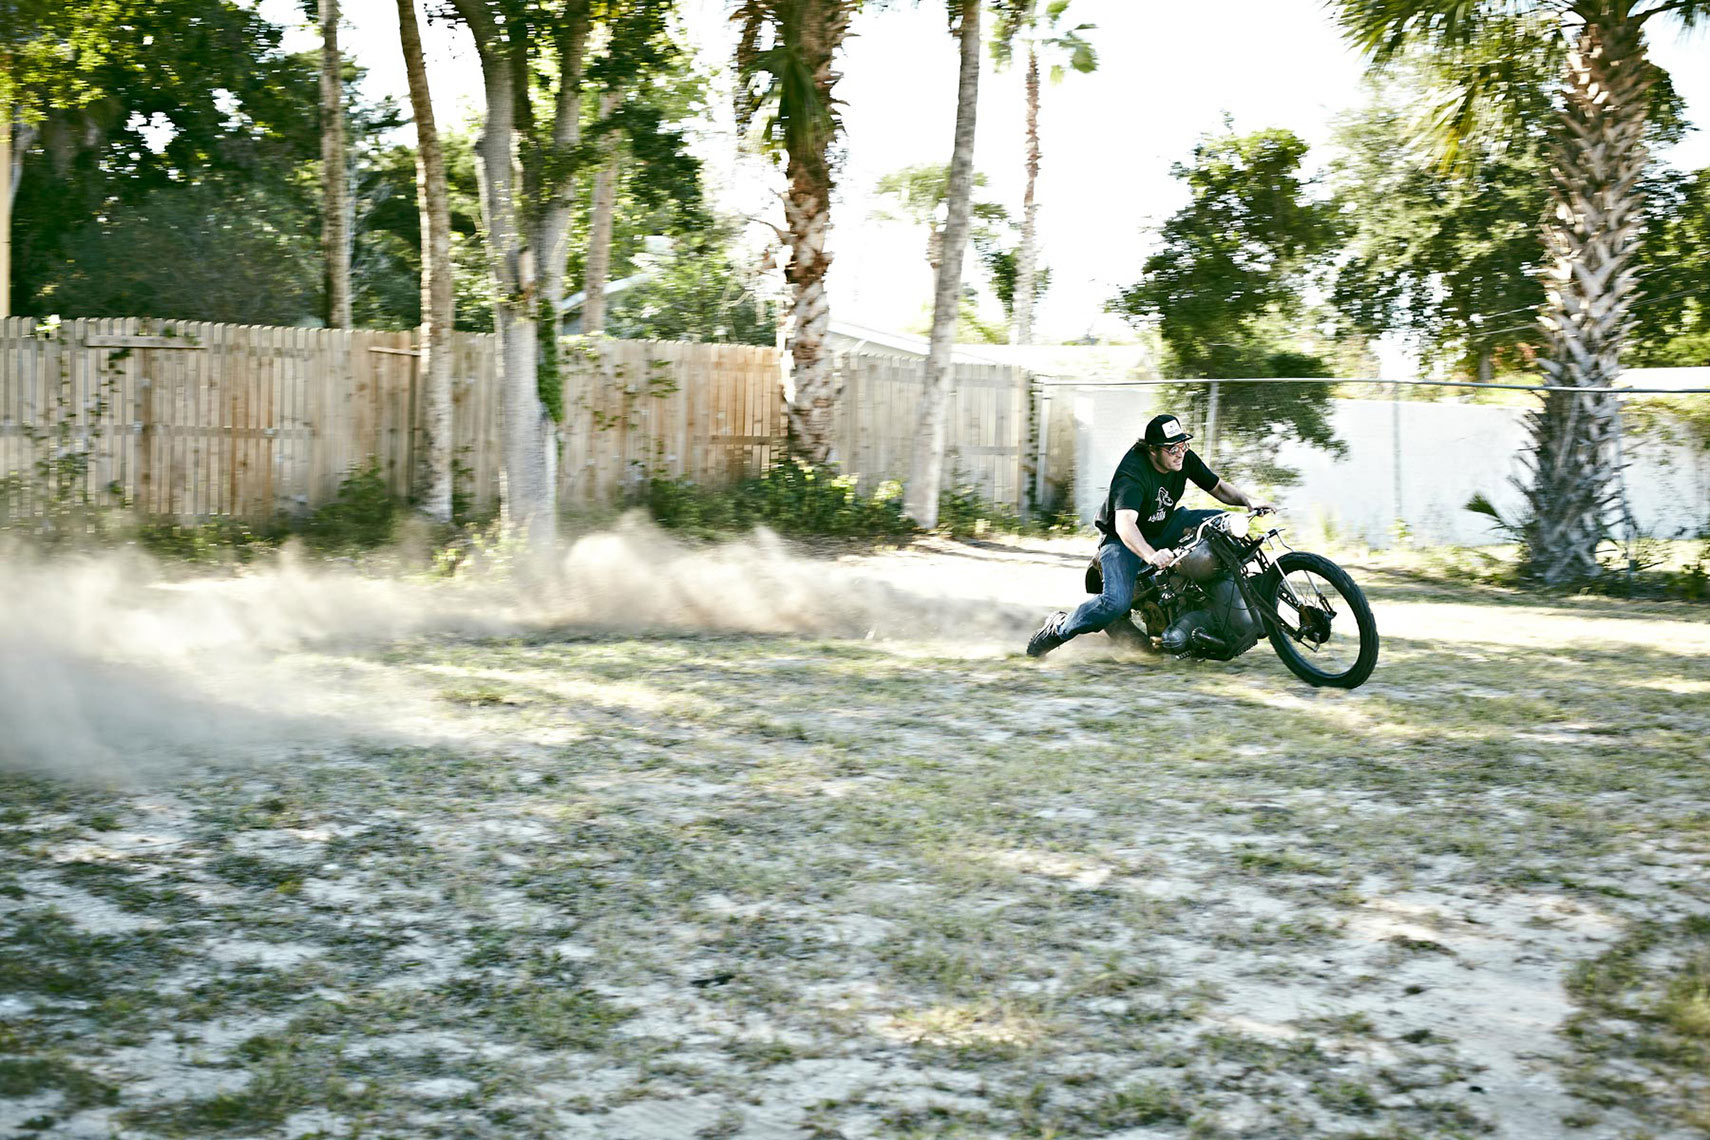 Backyard Burnout